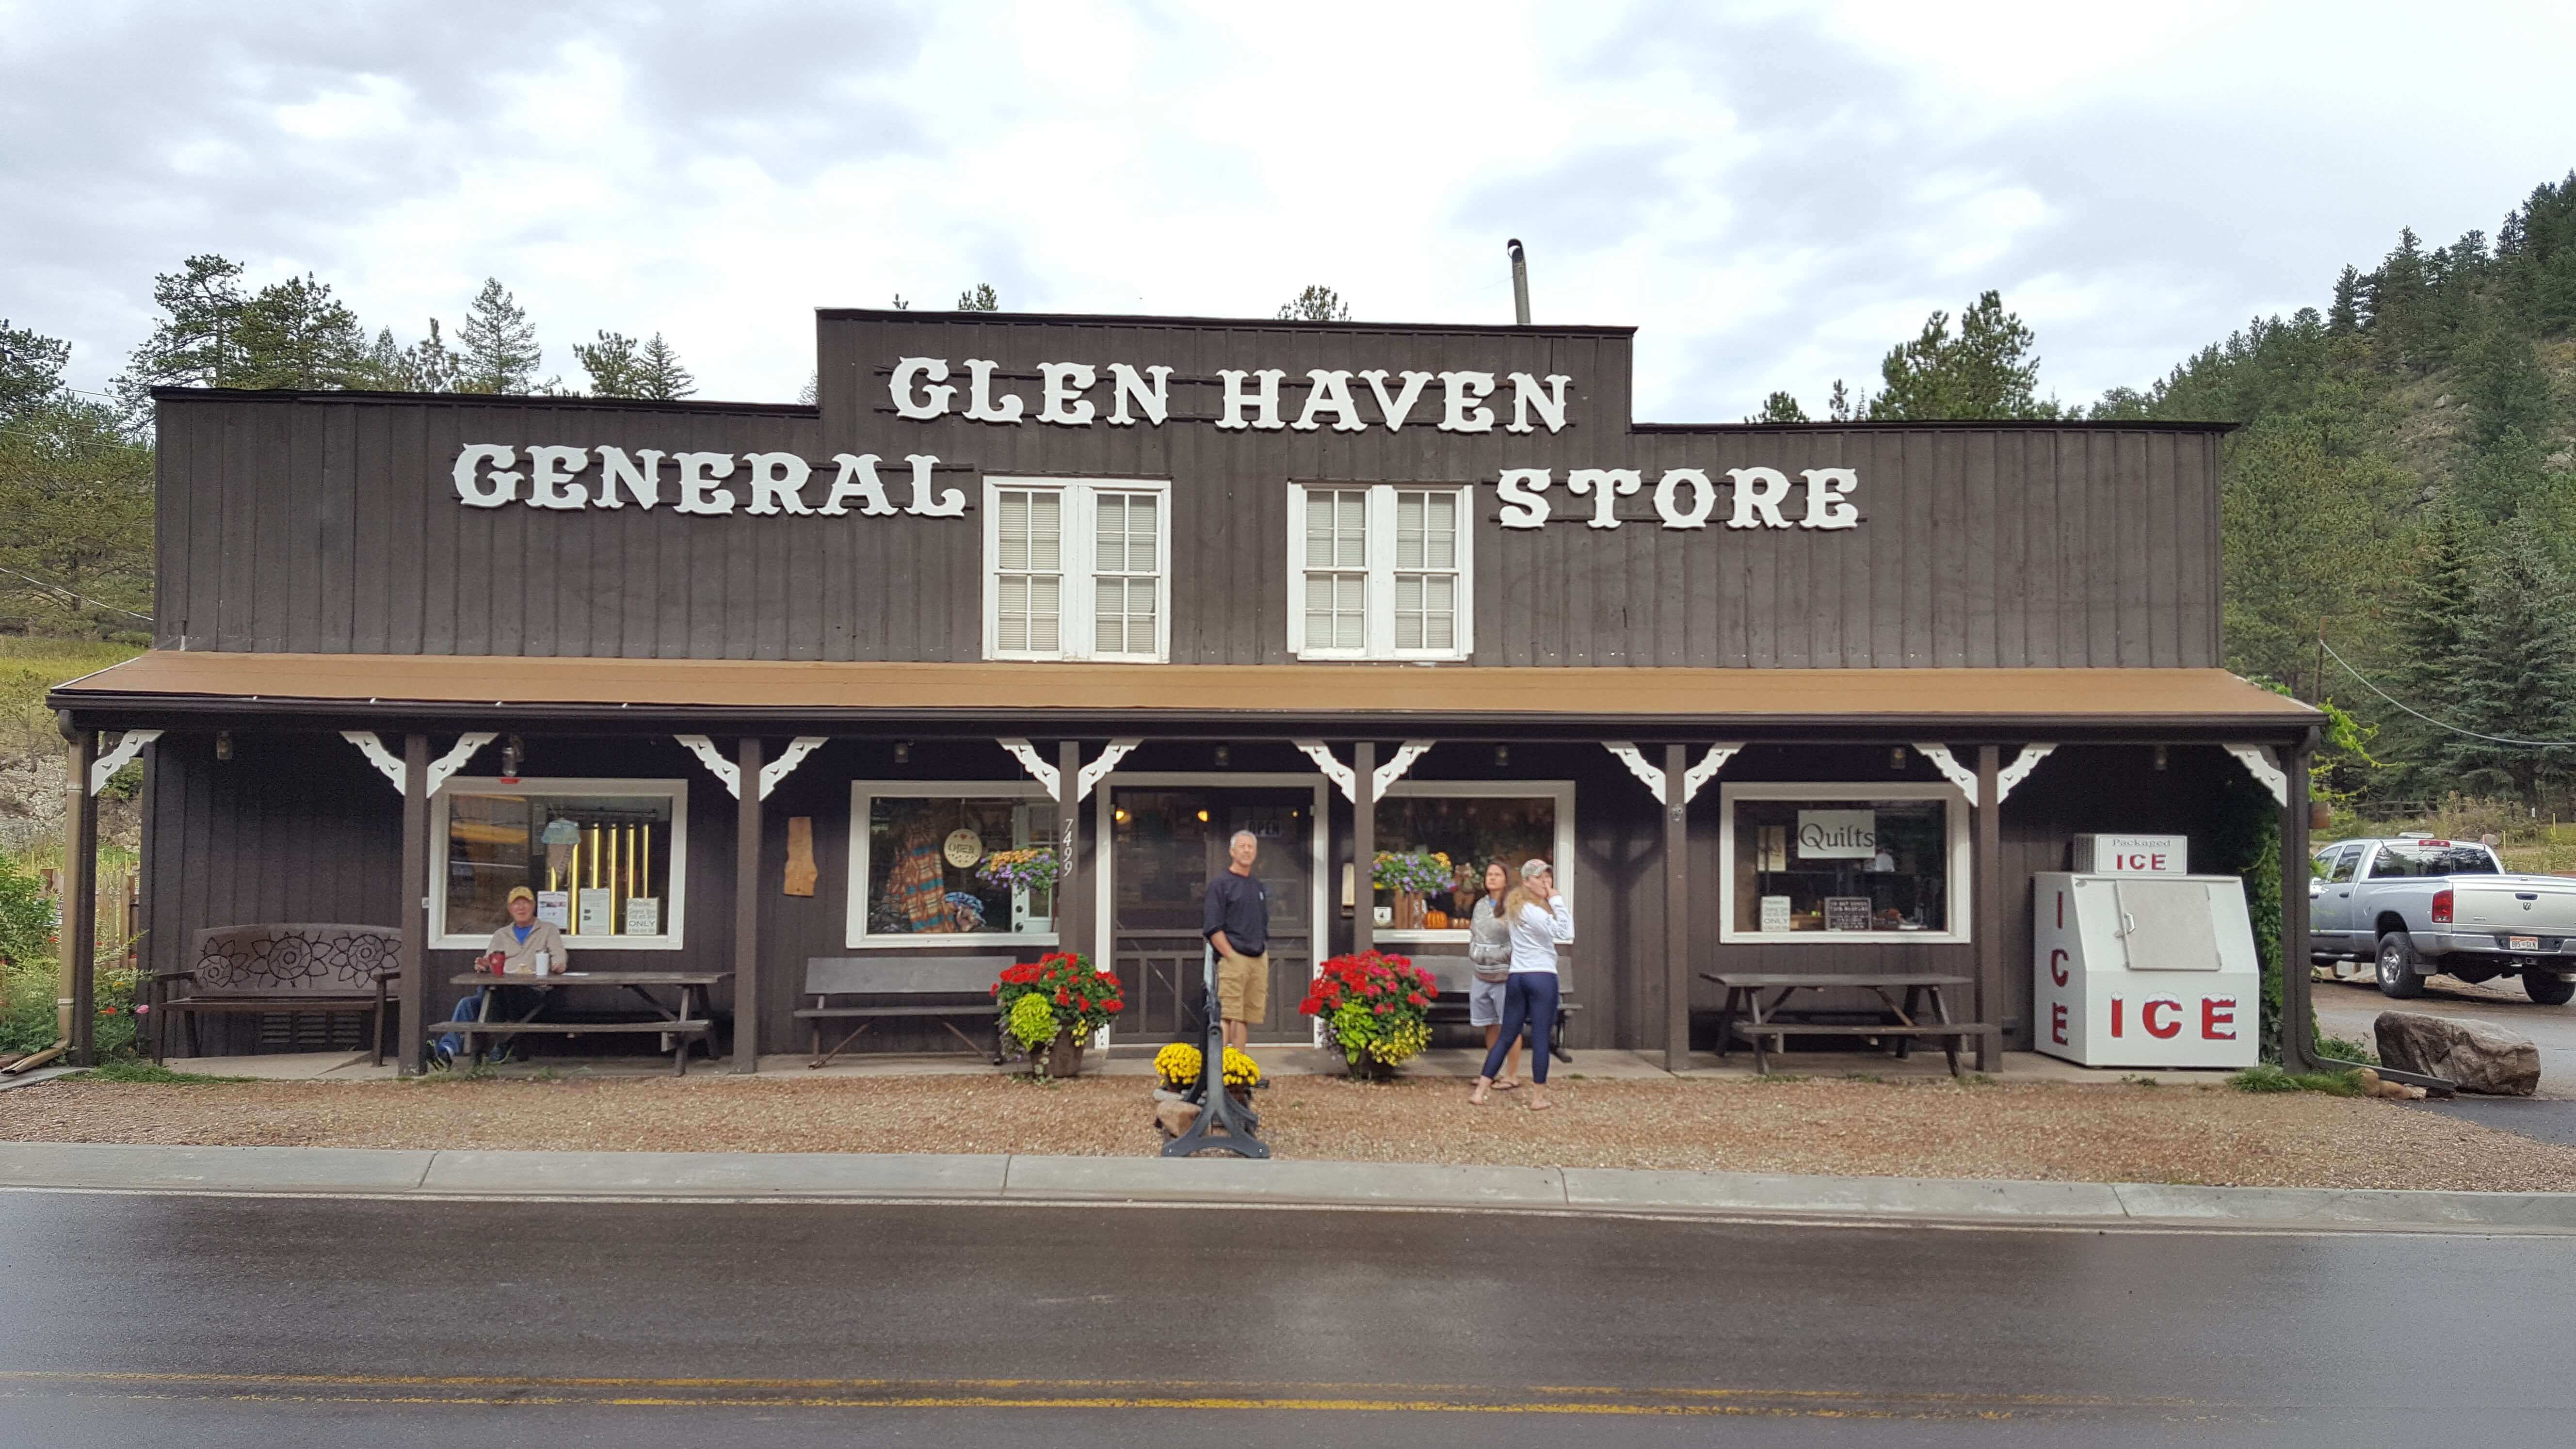 Glen Haven, CO General Store, home of the giant cinnamon rolls